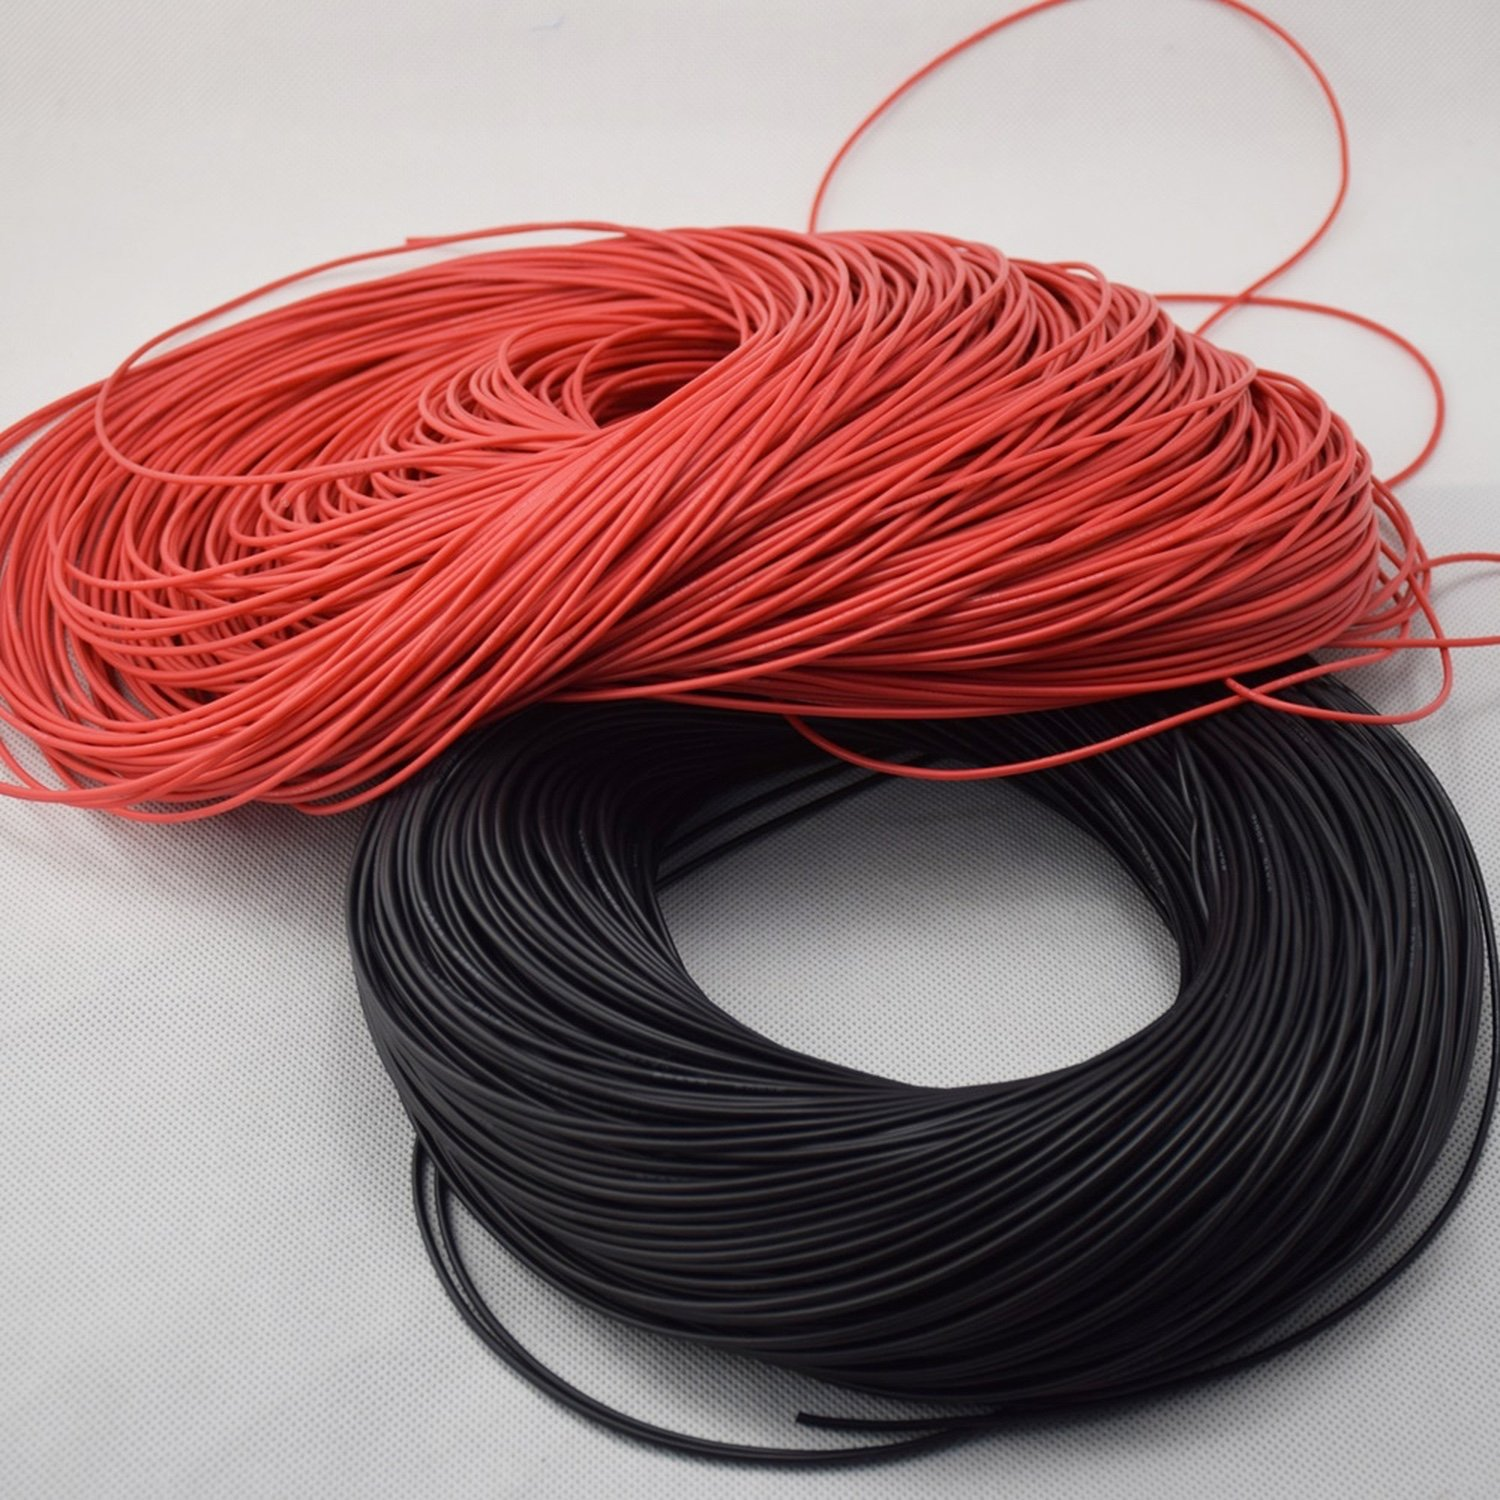 все цены на Bendable Silicone Cord 22 AWG section resistant up to 200 ° and 600v онлайн